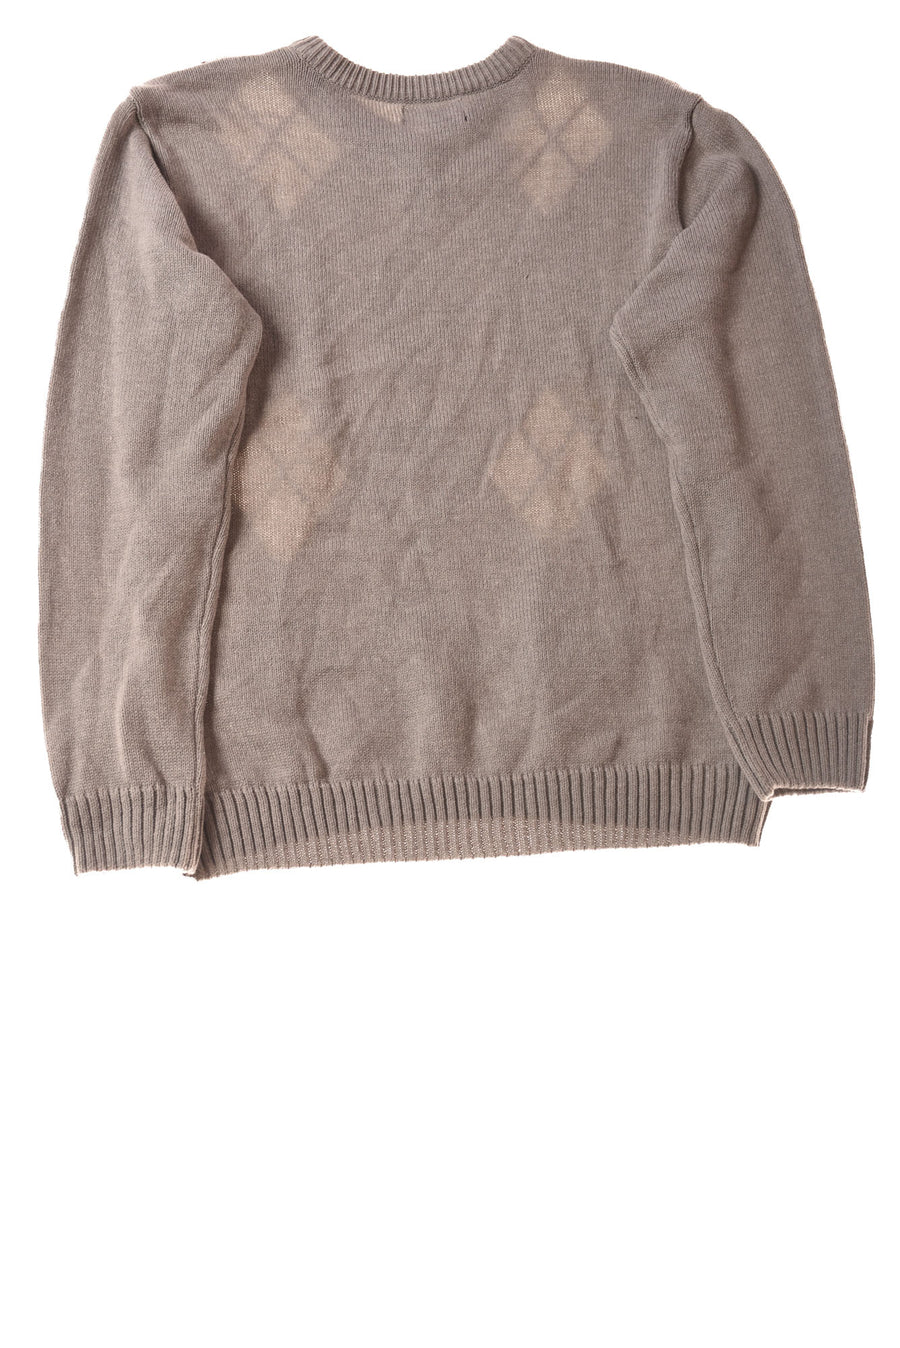 Men's Sweater By XG